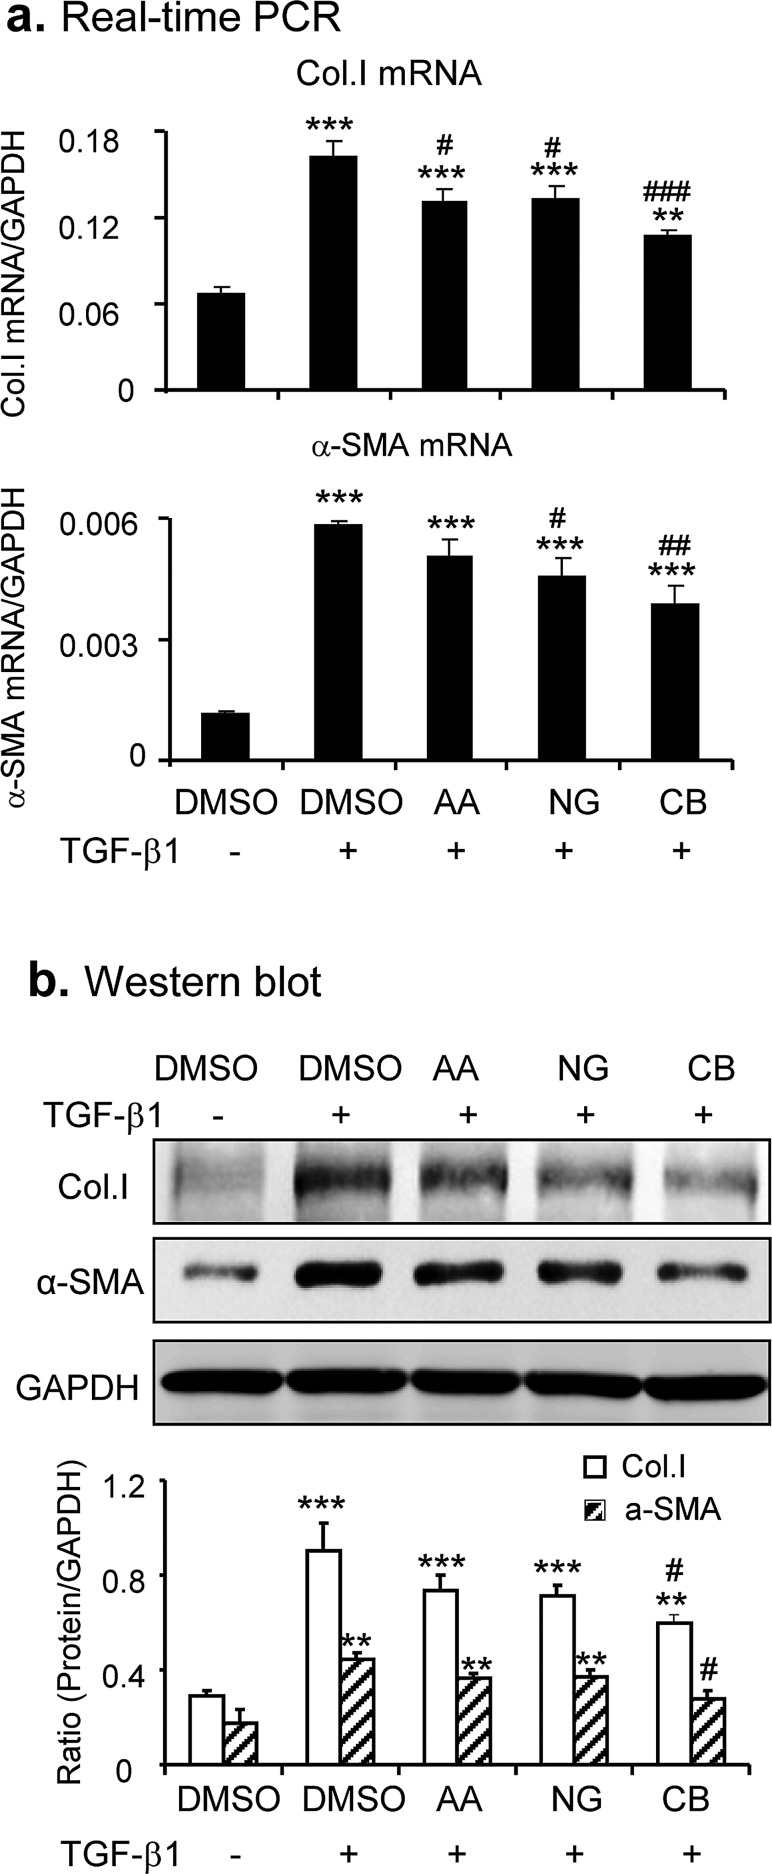 Combination of AA and NG produces a better protective effect on TGF-β1-induced fibrotic response in vitro a. Effect of AA, NG, or their combination on TGF-β1 (2ng/ml)-induced mRNA expression of collagen I and α-SMA detected by real-time PCR. b. Effect of AA, NG, or their combination on TGF-β1 (2ng/ml)-induced mRNA expression of collagen I and α-SMA detected by Western blot analysis. Data represent the mean ± SEM for at least 3 independent experiments. ** p